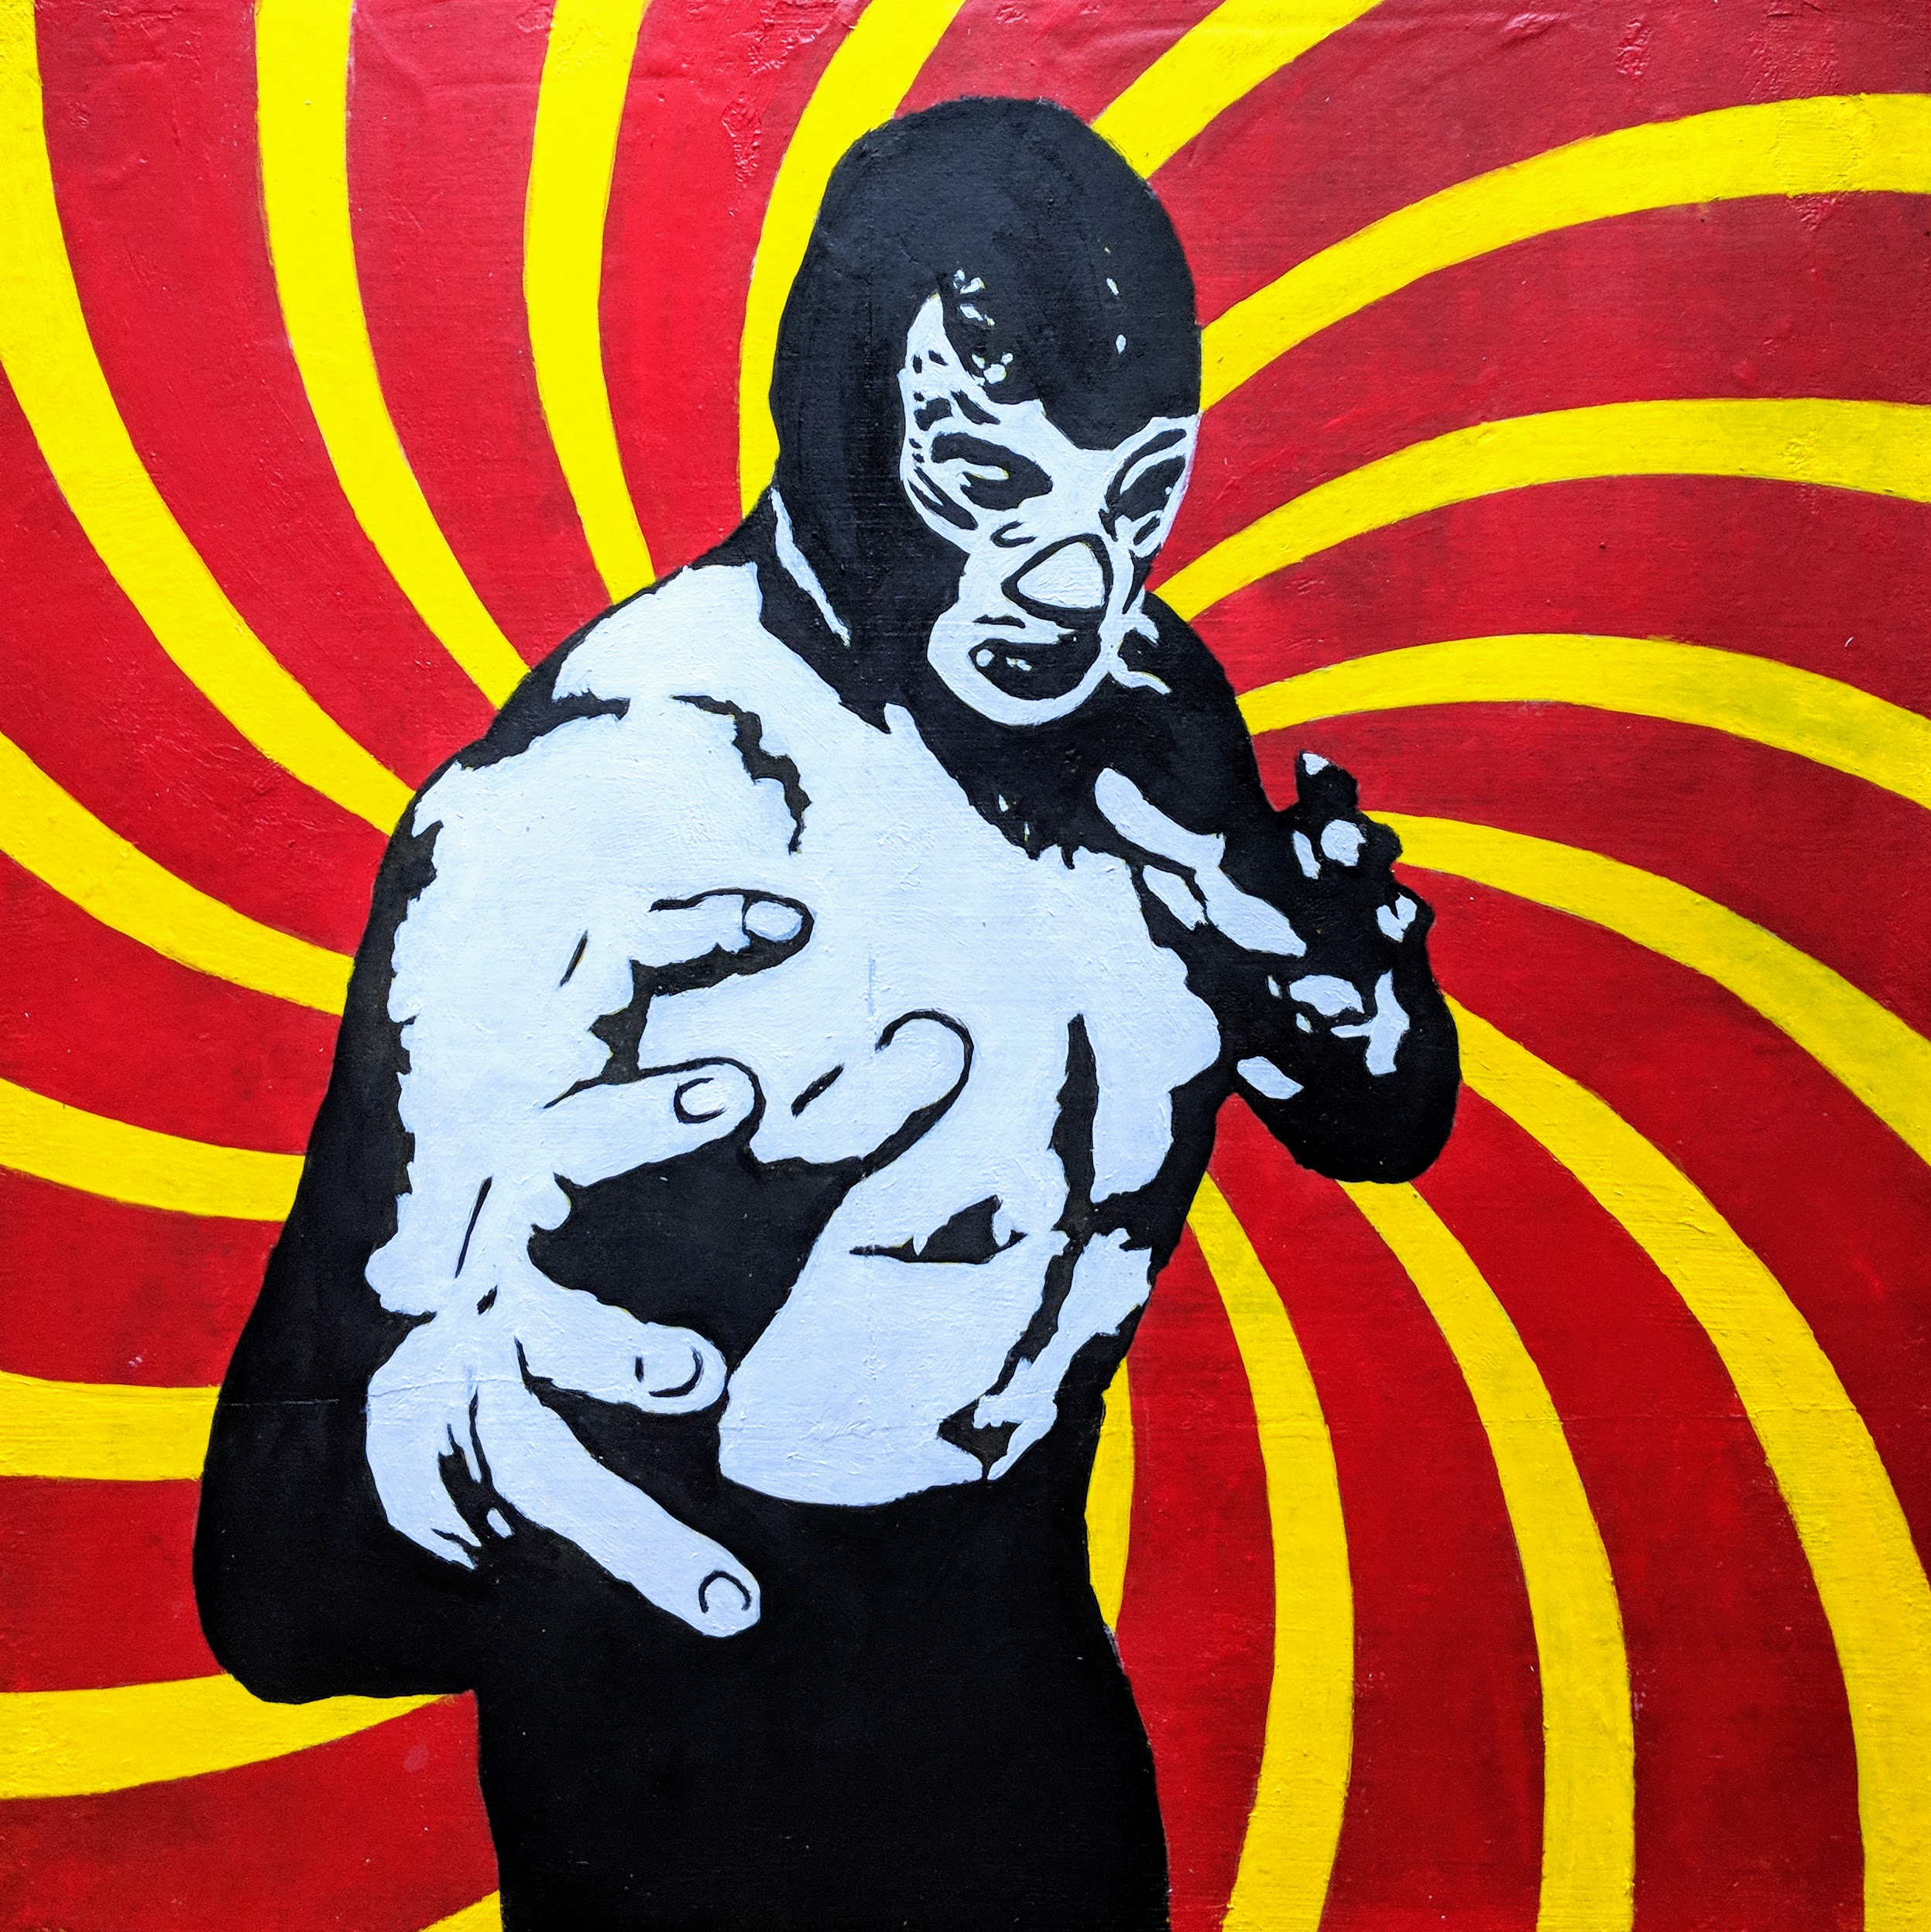 Black and White Graphic Image of a Lucha Libre Mexican Wrestler on a Yellow and Red Spiral Background